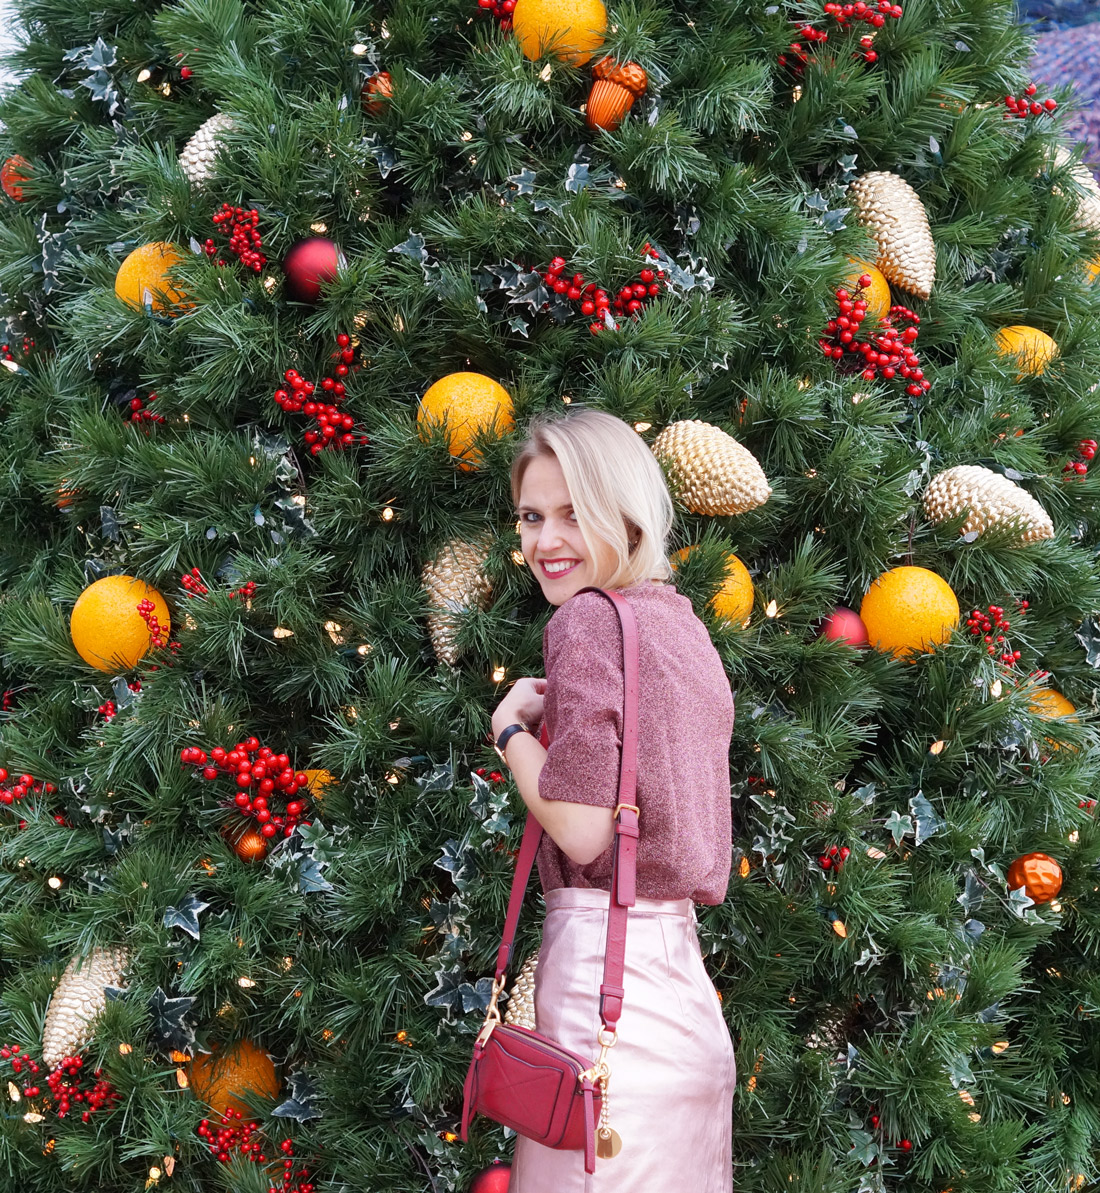 bag-at-you-fashion-blog-christmas-outfit-ideas